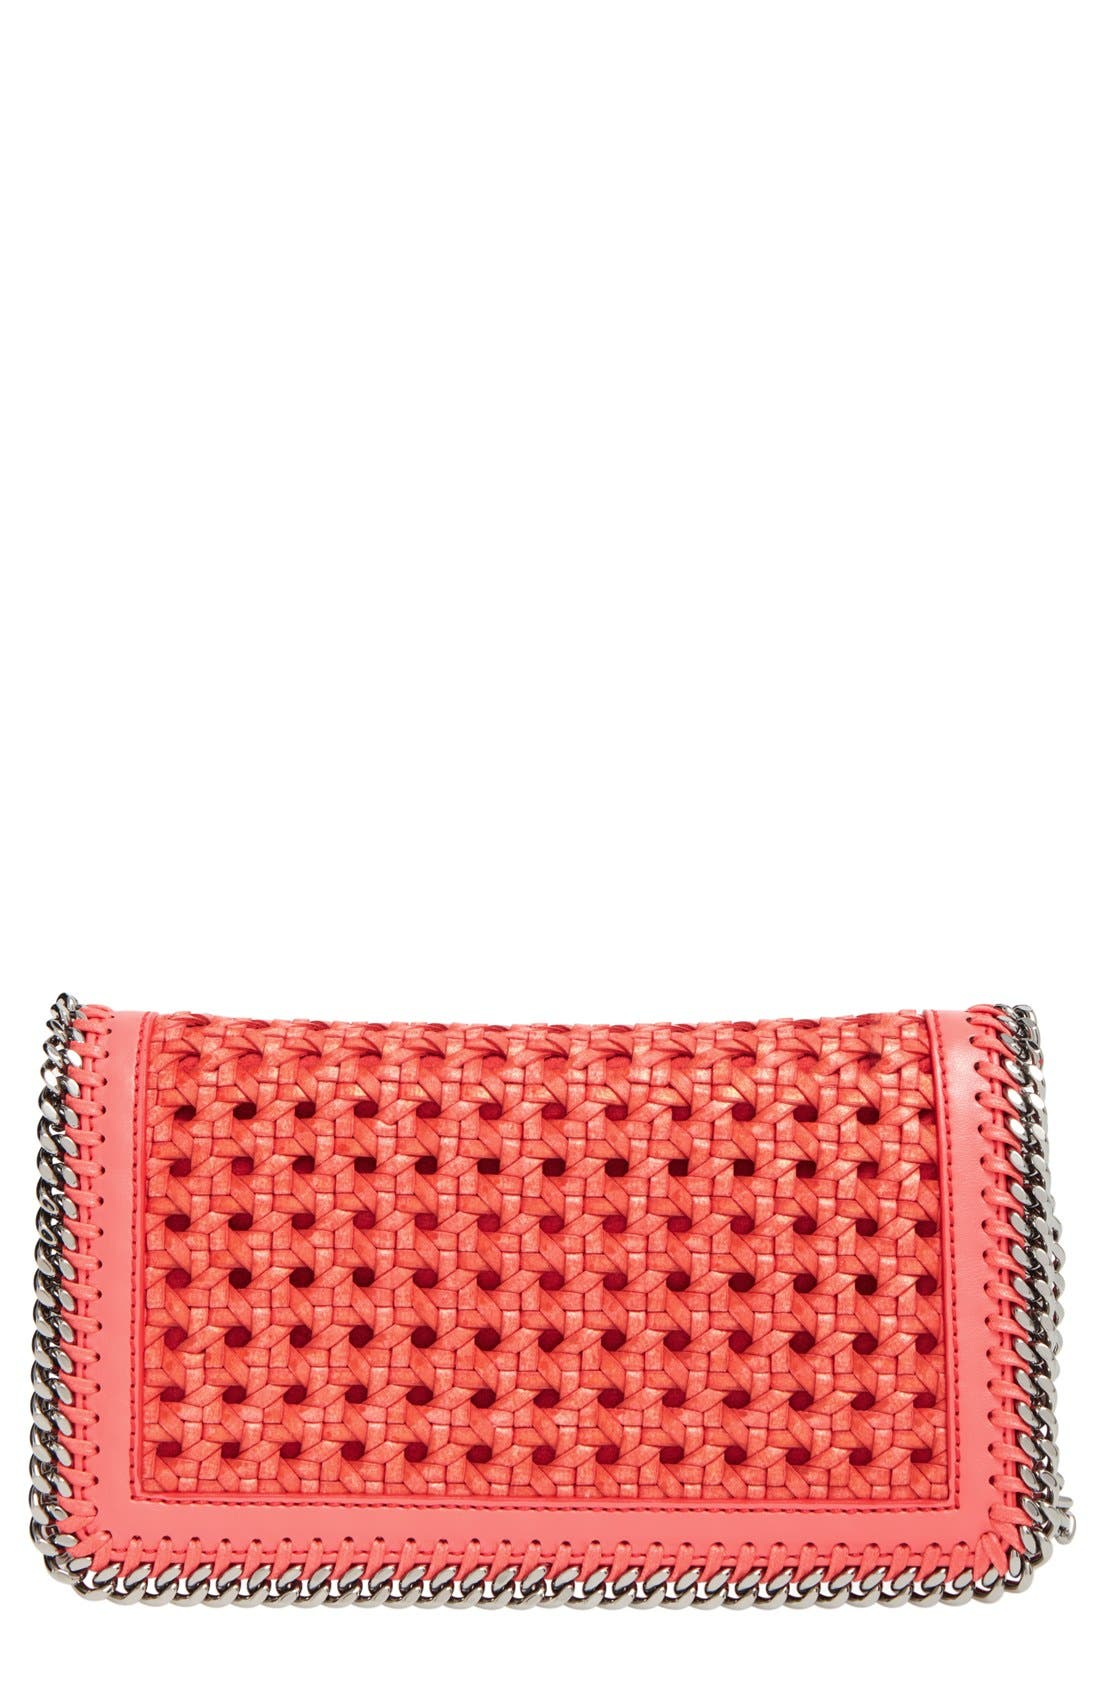 Alternate Image 1 Selected - Stella McCartney 'Falabella - Caned' Faux Leather Crossbody Bag